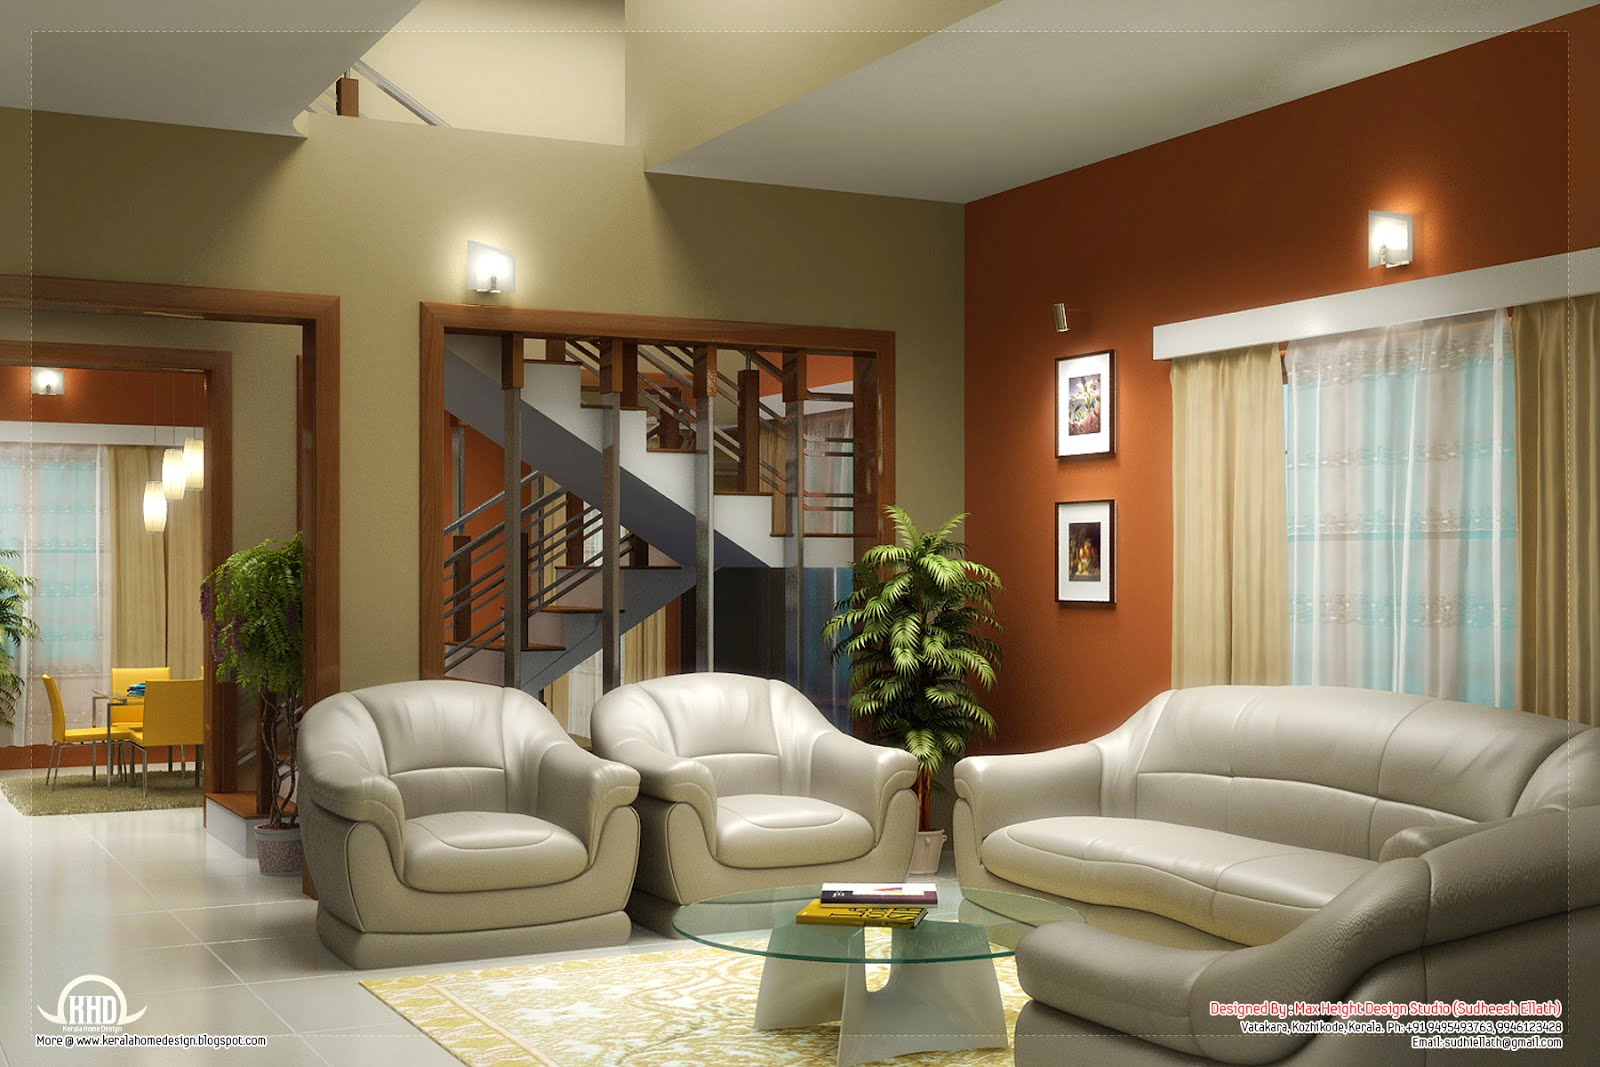 Beautiful Living Room Rendering  Kerala Home Design And. Houzz Living Room Display. Www.livingroom.com. Living Room Furniture Ivan Smith. Diy Vintage Living Room. In The Living Room Vocabulary. Warm Yellow Paint Living Room. Living Room Uk. Living Room With Fish Tank